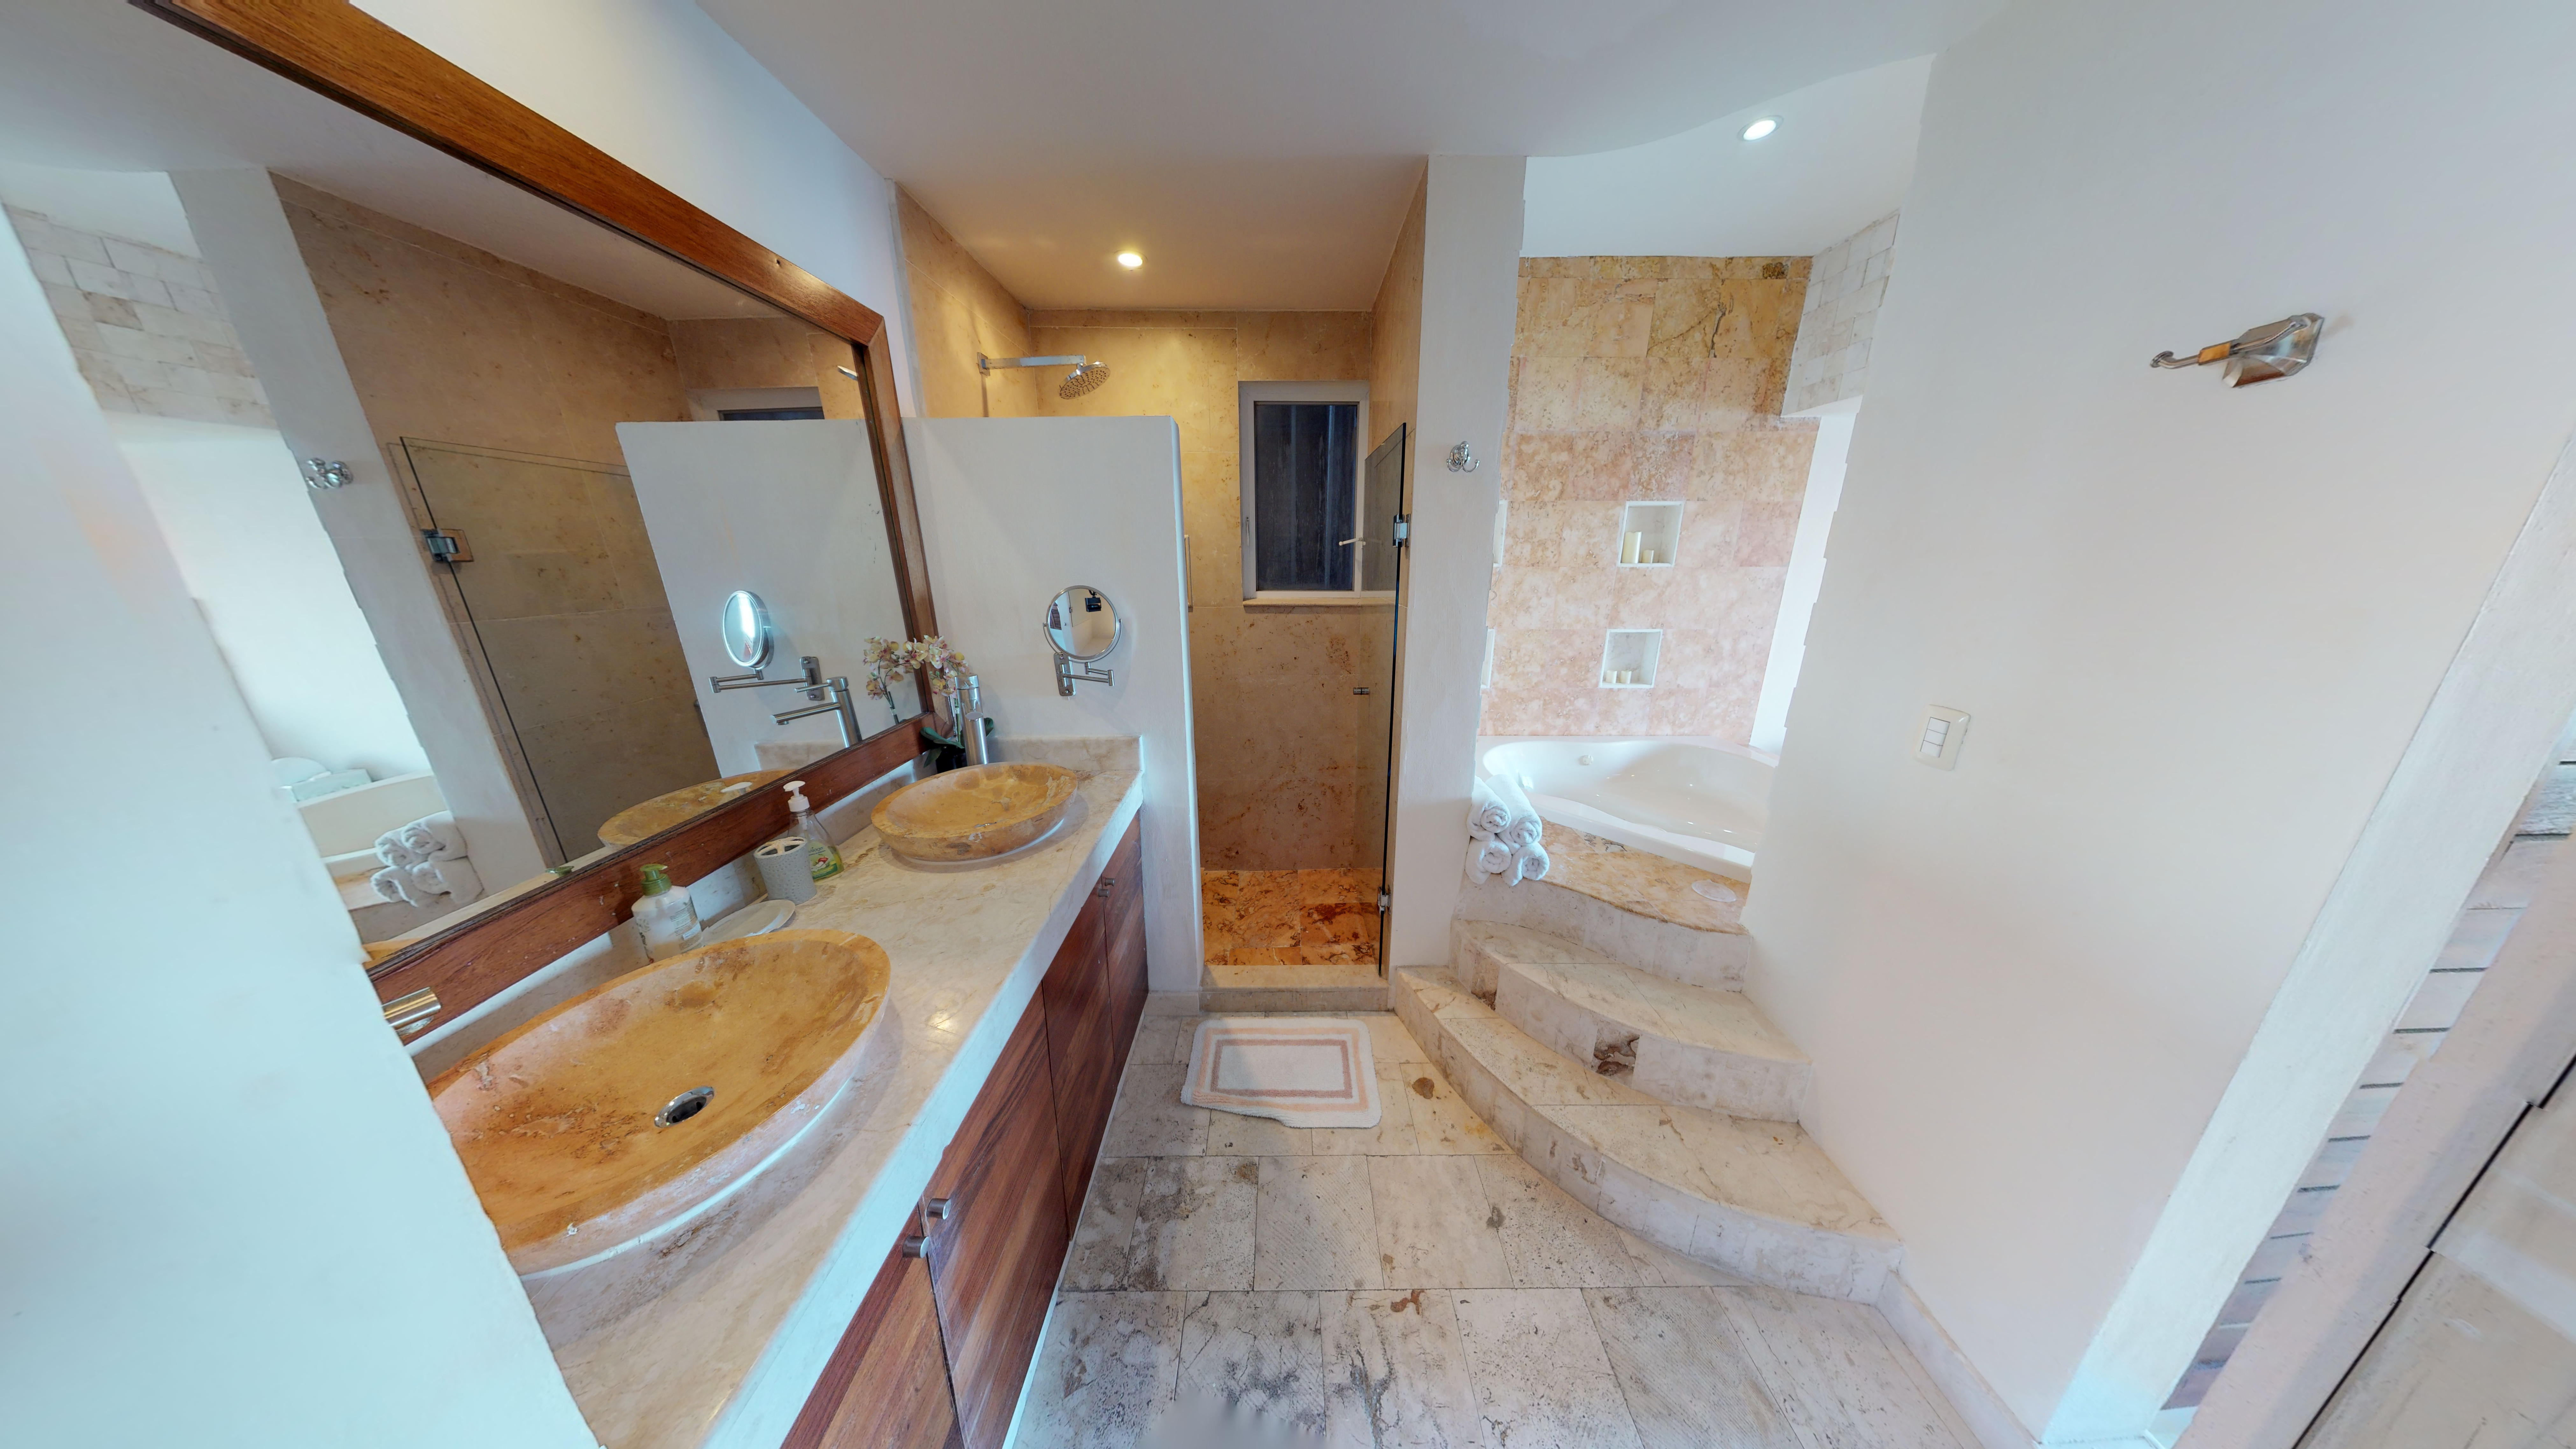 Apartament-1202-Bathroom.jpg